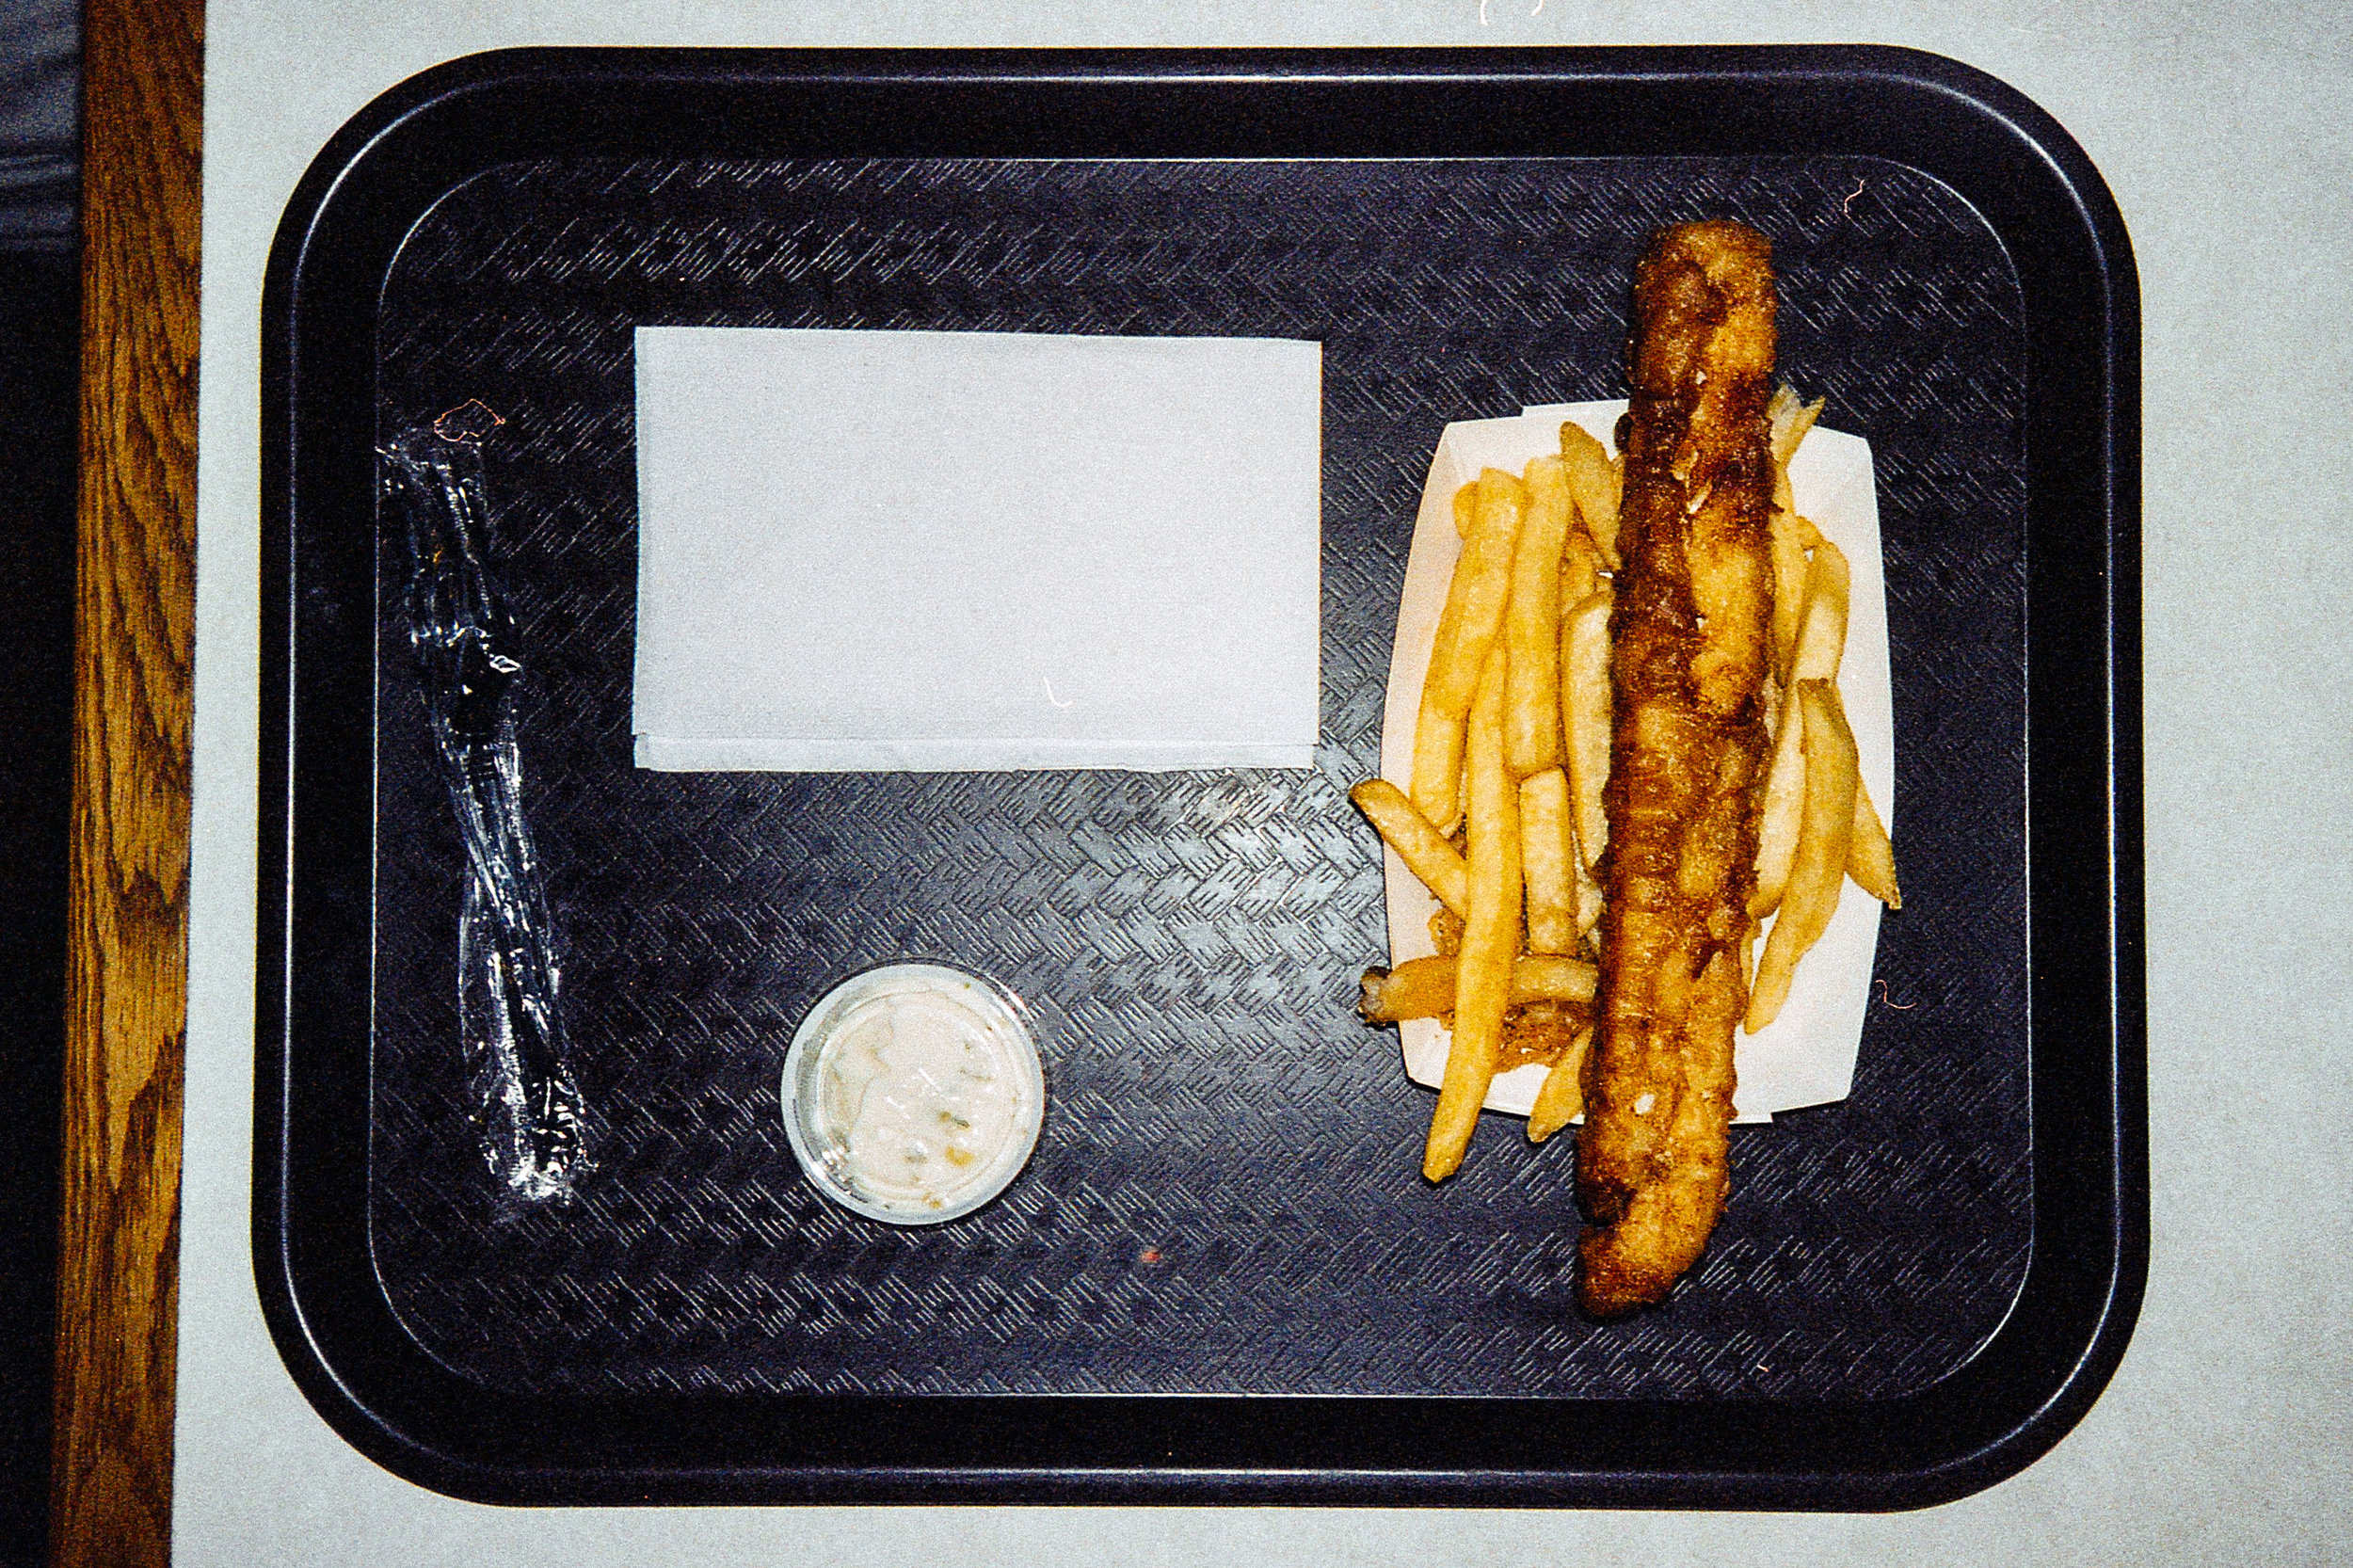 Stylus Infinity - Yorkshire Fish and Chips - Food.jpg